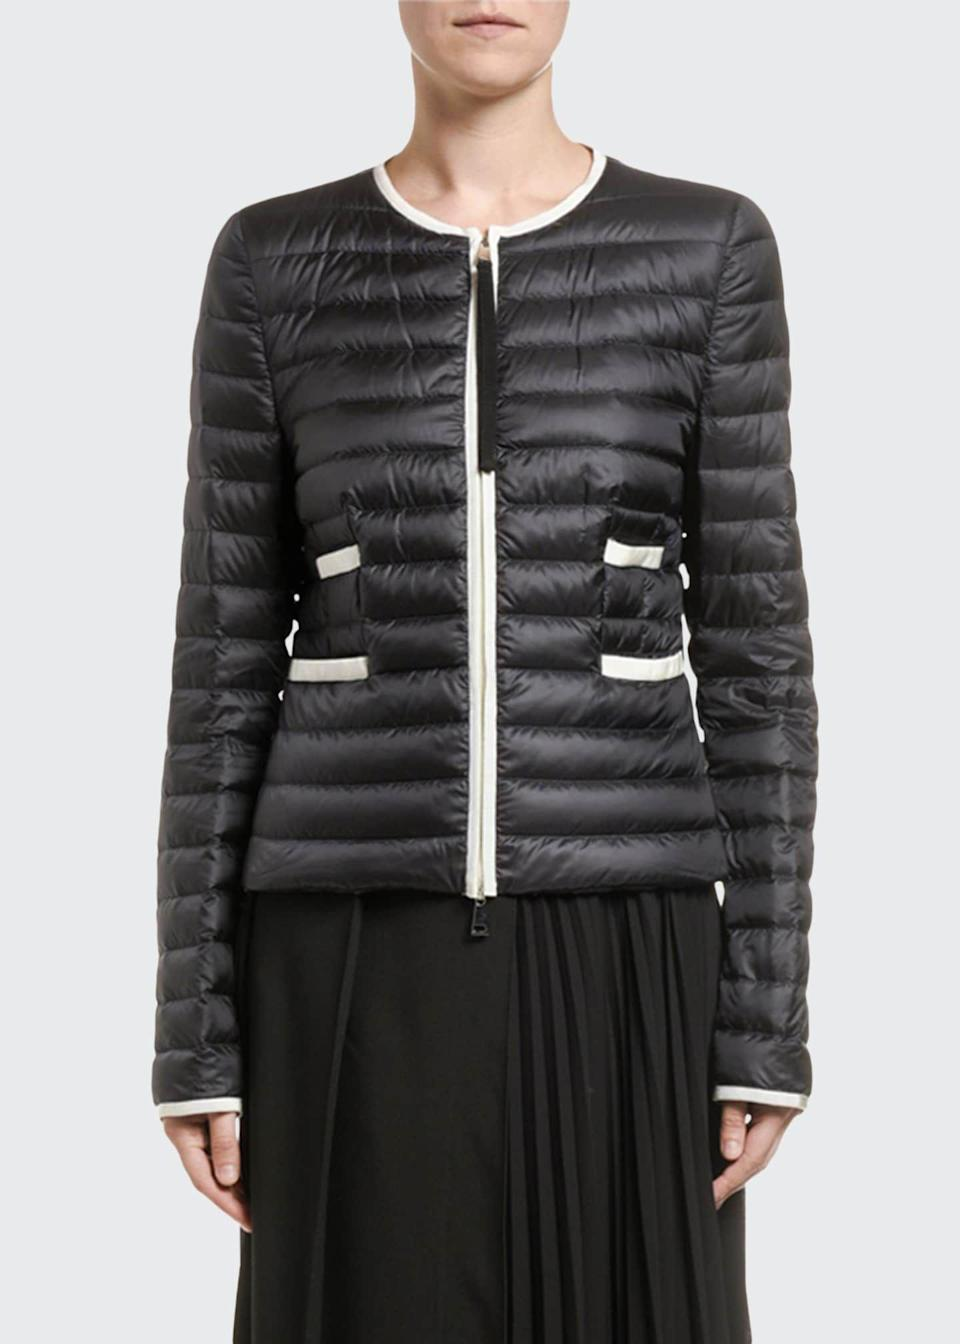 "<p><strong>Moncler</strong></p><p>bergdorfgoodman.com</p><p><strong>$1170.00</strong></p><p><a href=""https://go.redirectingat.com?id=74968X1596630&url=https%3A%2F%2Fwww.bergdorfgoodman.com%2Fp%2Fmoncler-baillet-contrast-trim-puffer-coat-white-prod152160279&sref=https%3A%2F%2Fwww.veranda.com%2Fluxury-lifestyle%2Fluxury-fashion-jewelry%2Fg35119210%2Fpuffer-coats%2F"" rel=""nofollow noopener"" target=""_blank"" data-ylk=""slk:Shop Now"" class=""link rapid-noclick-resp"">Shop Now</a></p><p>If there ever was an elegant puffer jacket, this is it. Thanks to contrast trimming, simple pockets, and a clean collar, this find is your new cocktails-on-a-snowy-evening look. </p>"